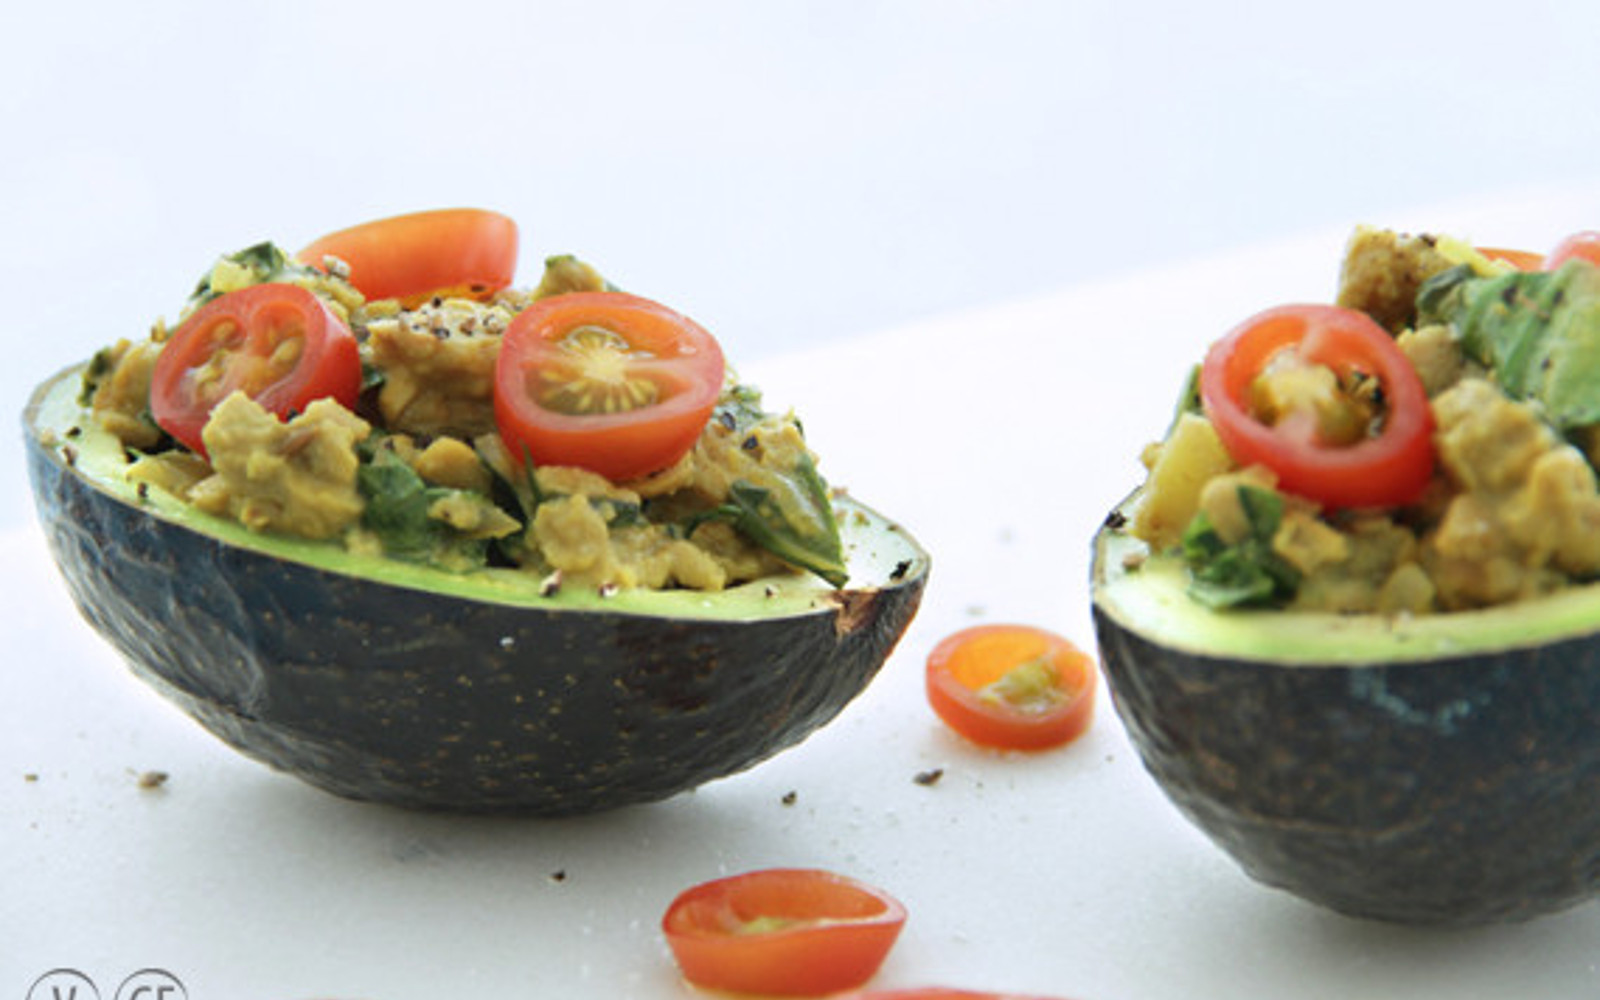 cheesy tempeh stuffed avocados